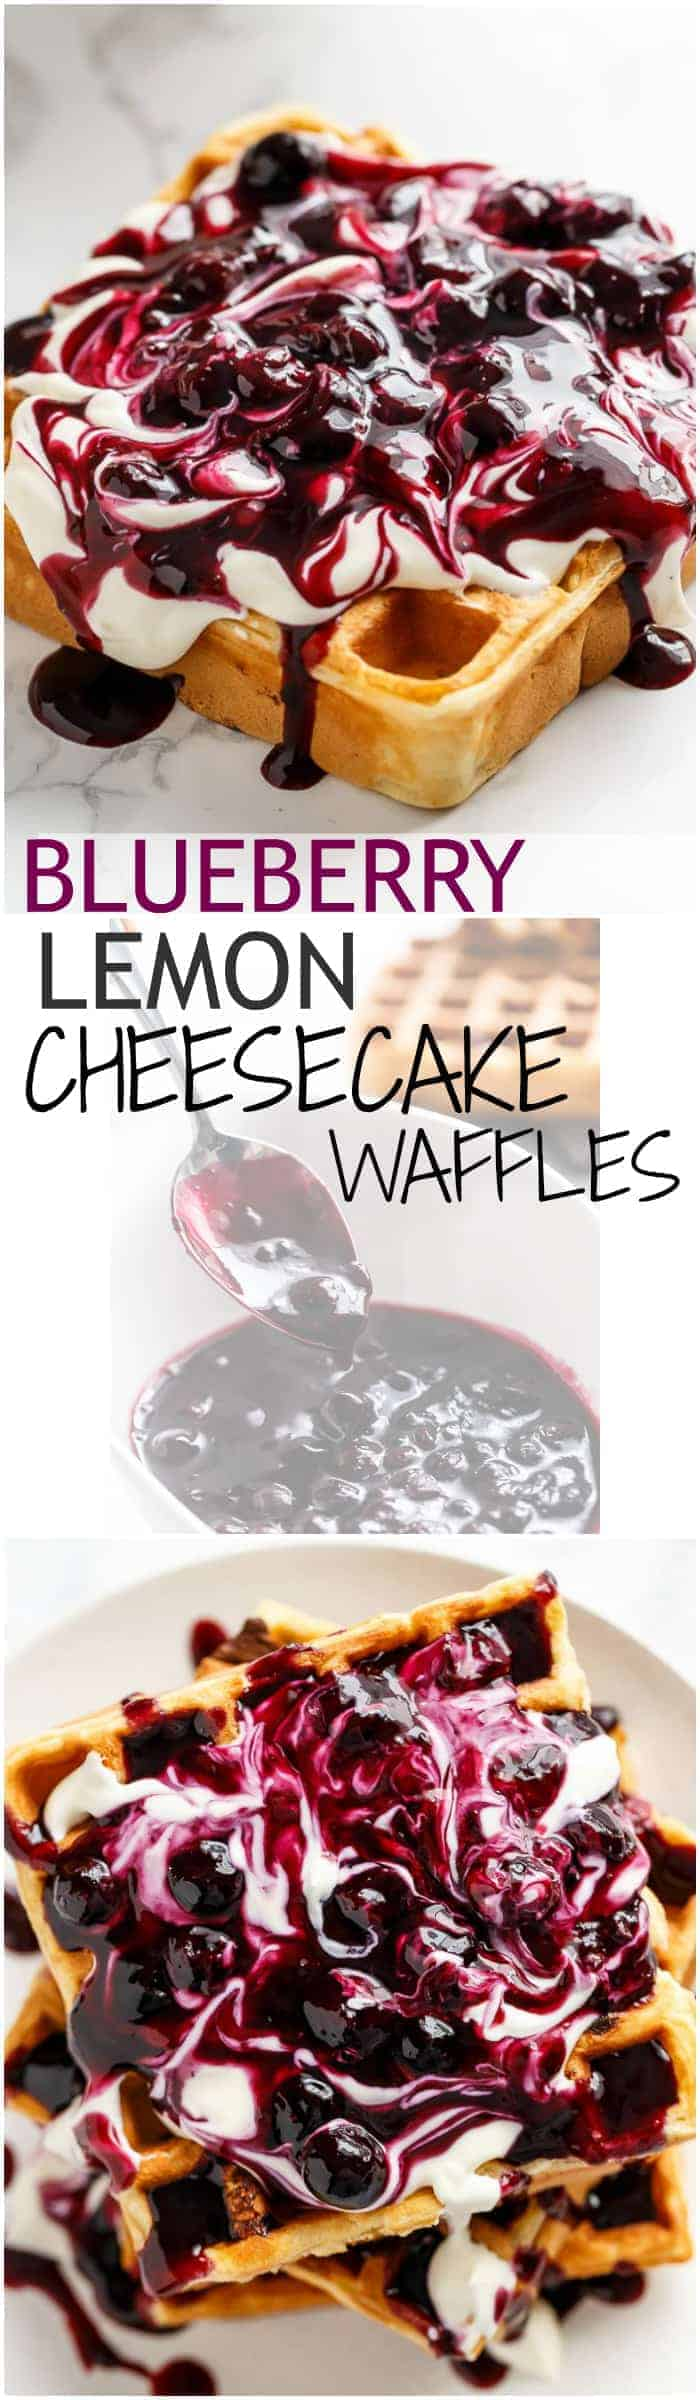 Blueberry Lemon Cheesecake Waffles bursting with blueberries in every bite, served with a creamy cheesecake toping and fresh home-made Blueberry Sauce! | https://cafedelites.com